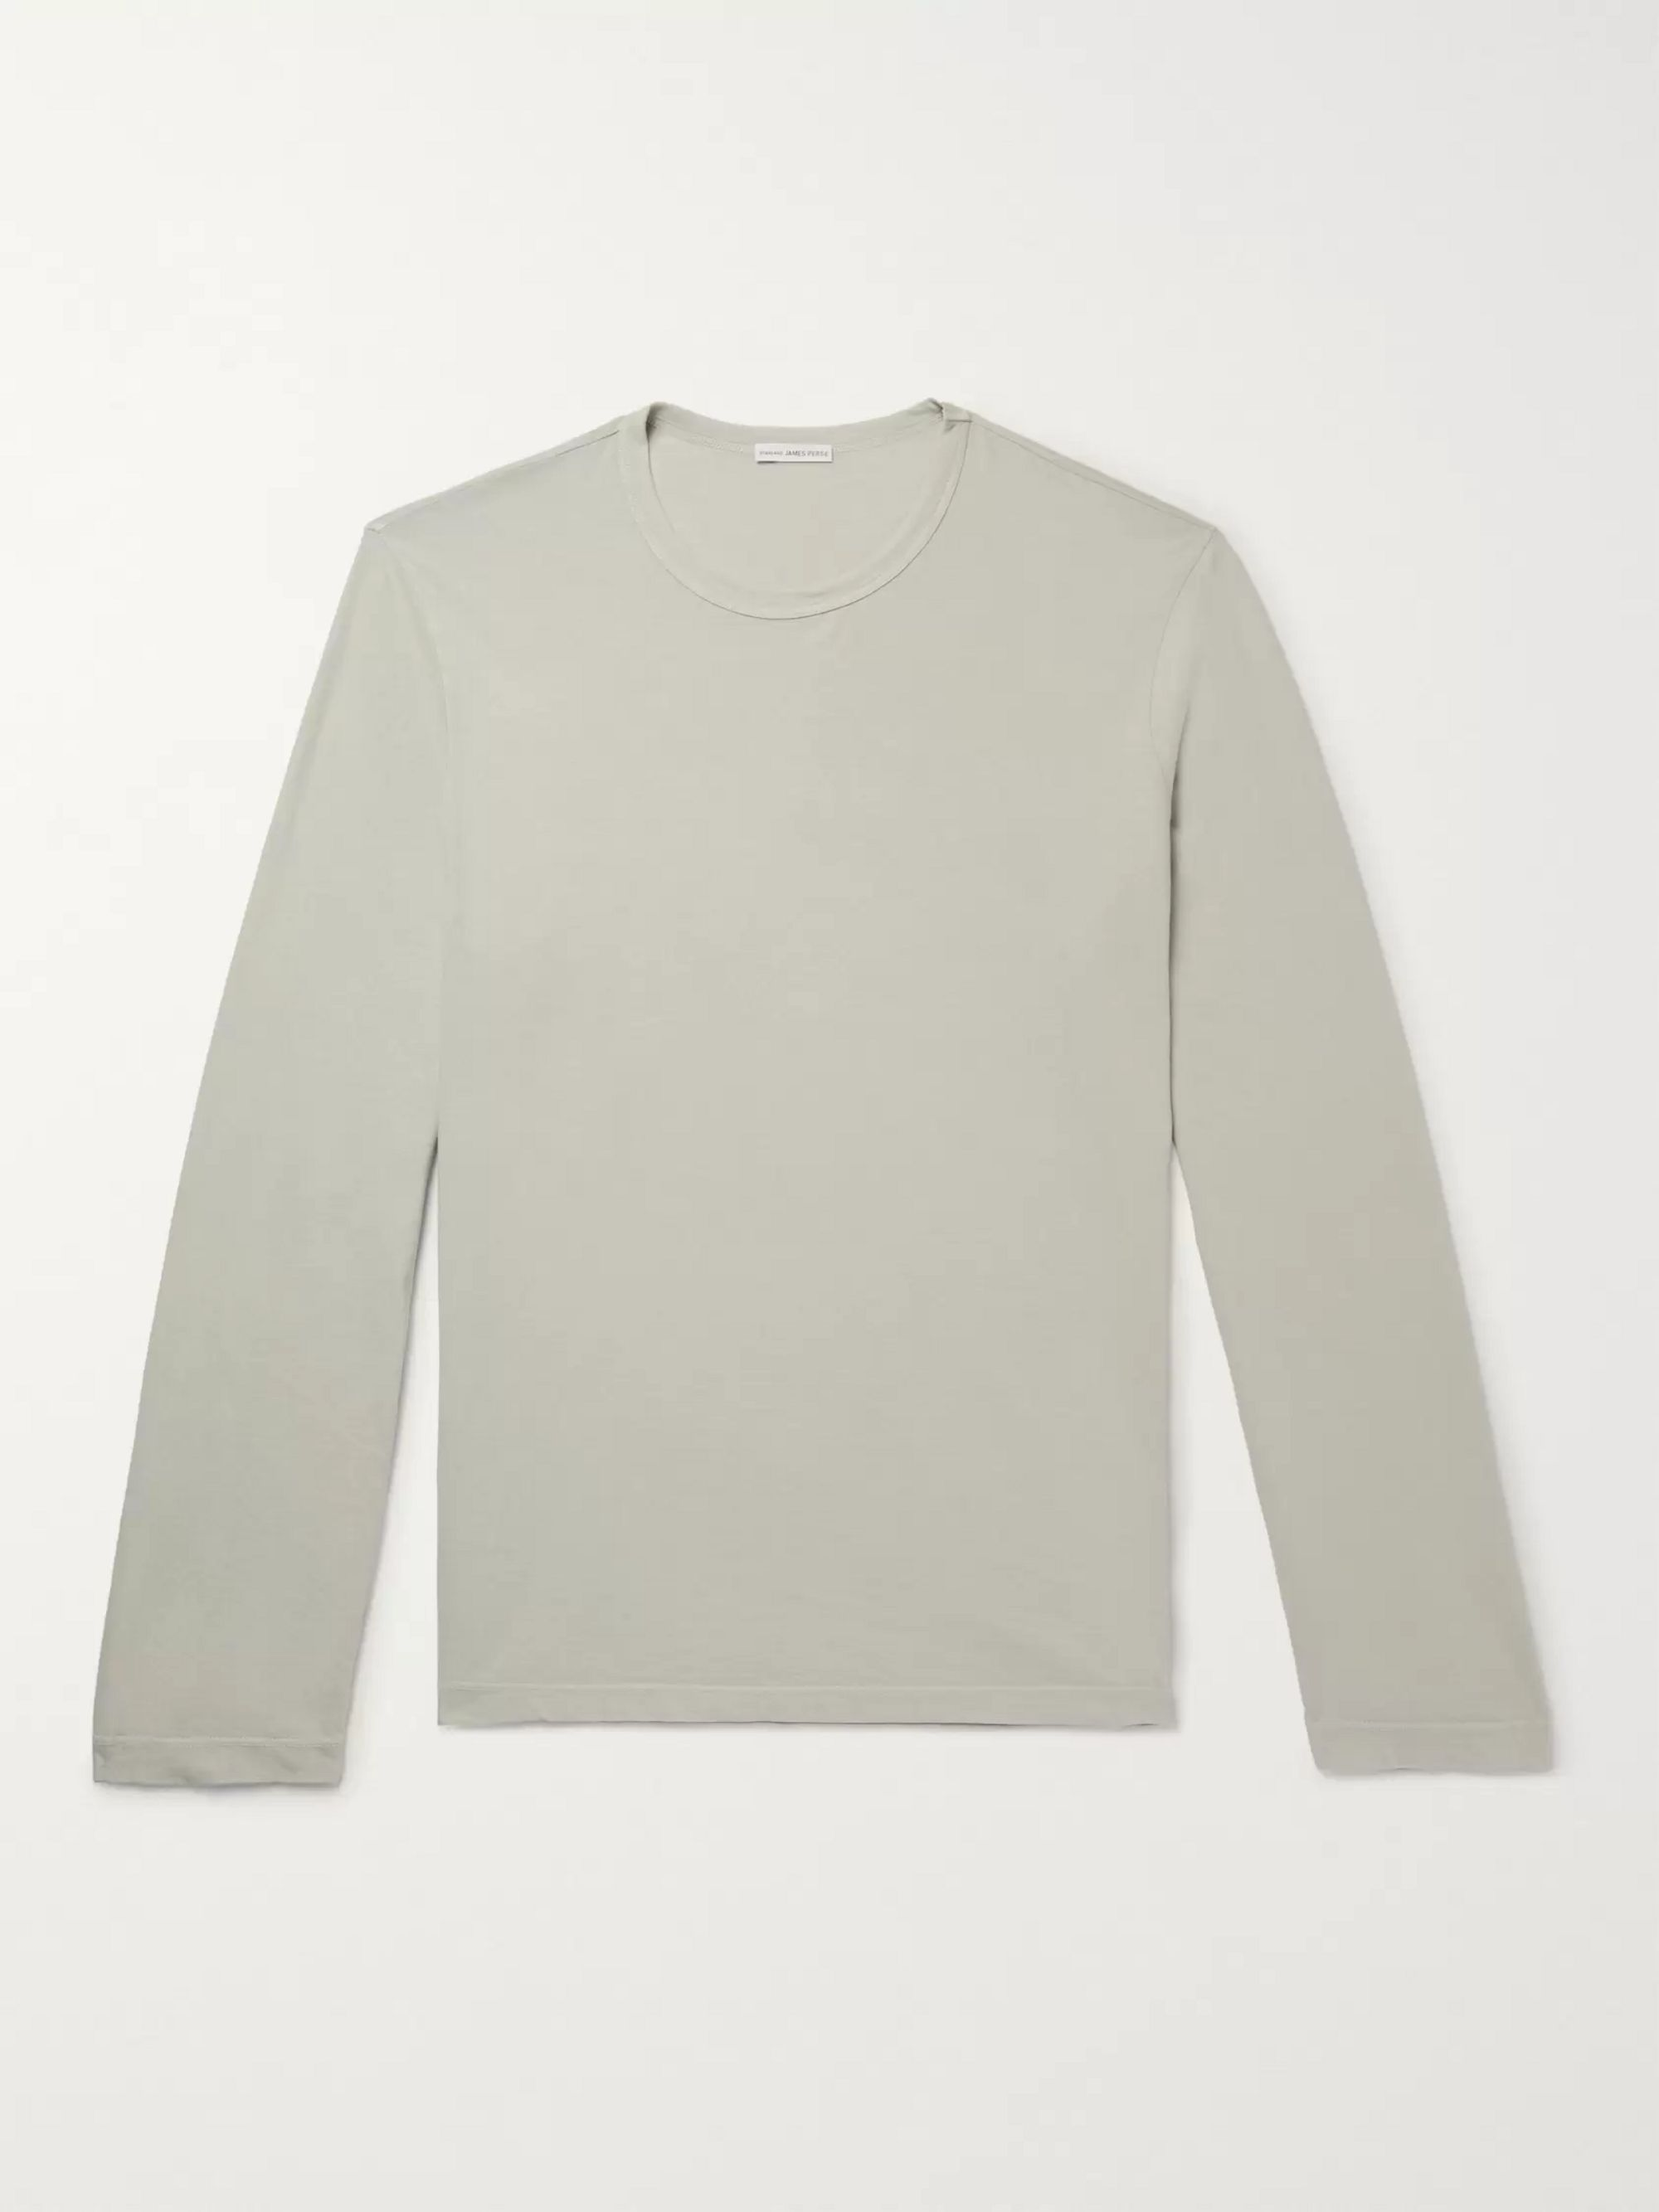 Dark gray Combed Cotton Jersey T Shirt | James Perse | MR PORTER